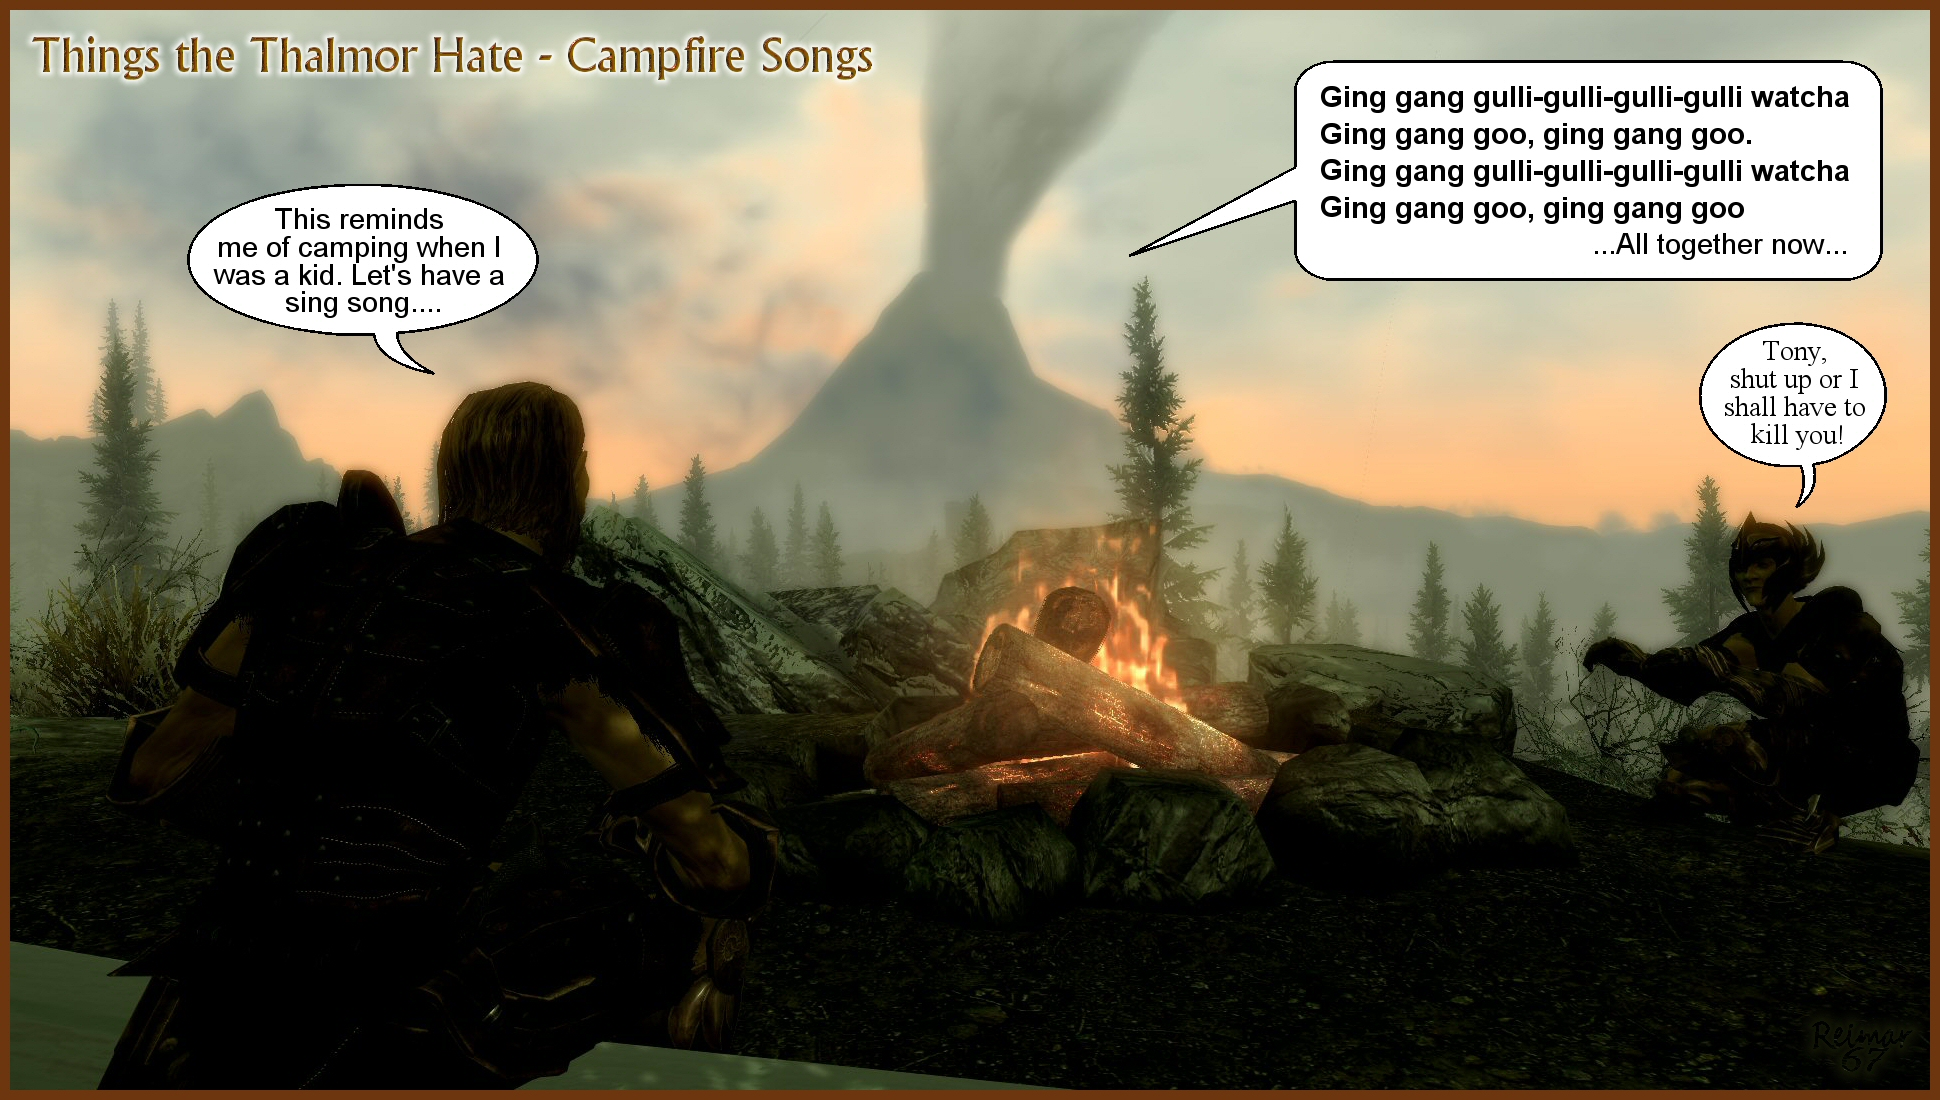 Thalmor Hate Campfire Songs